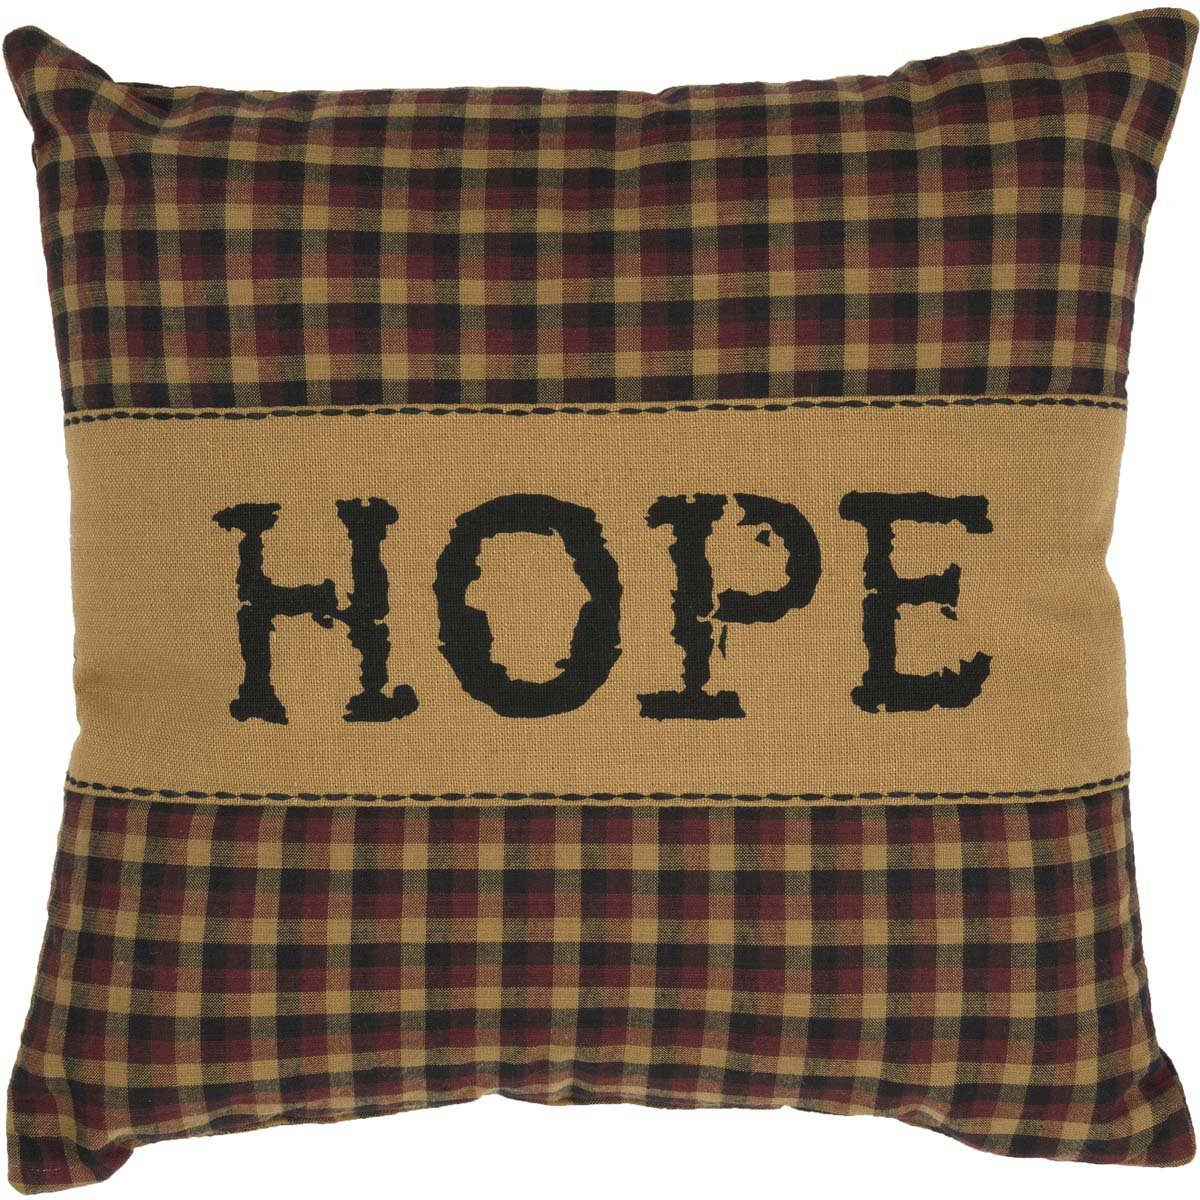 Heritage Farms Hope Pillow.